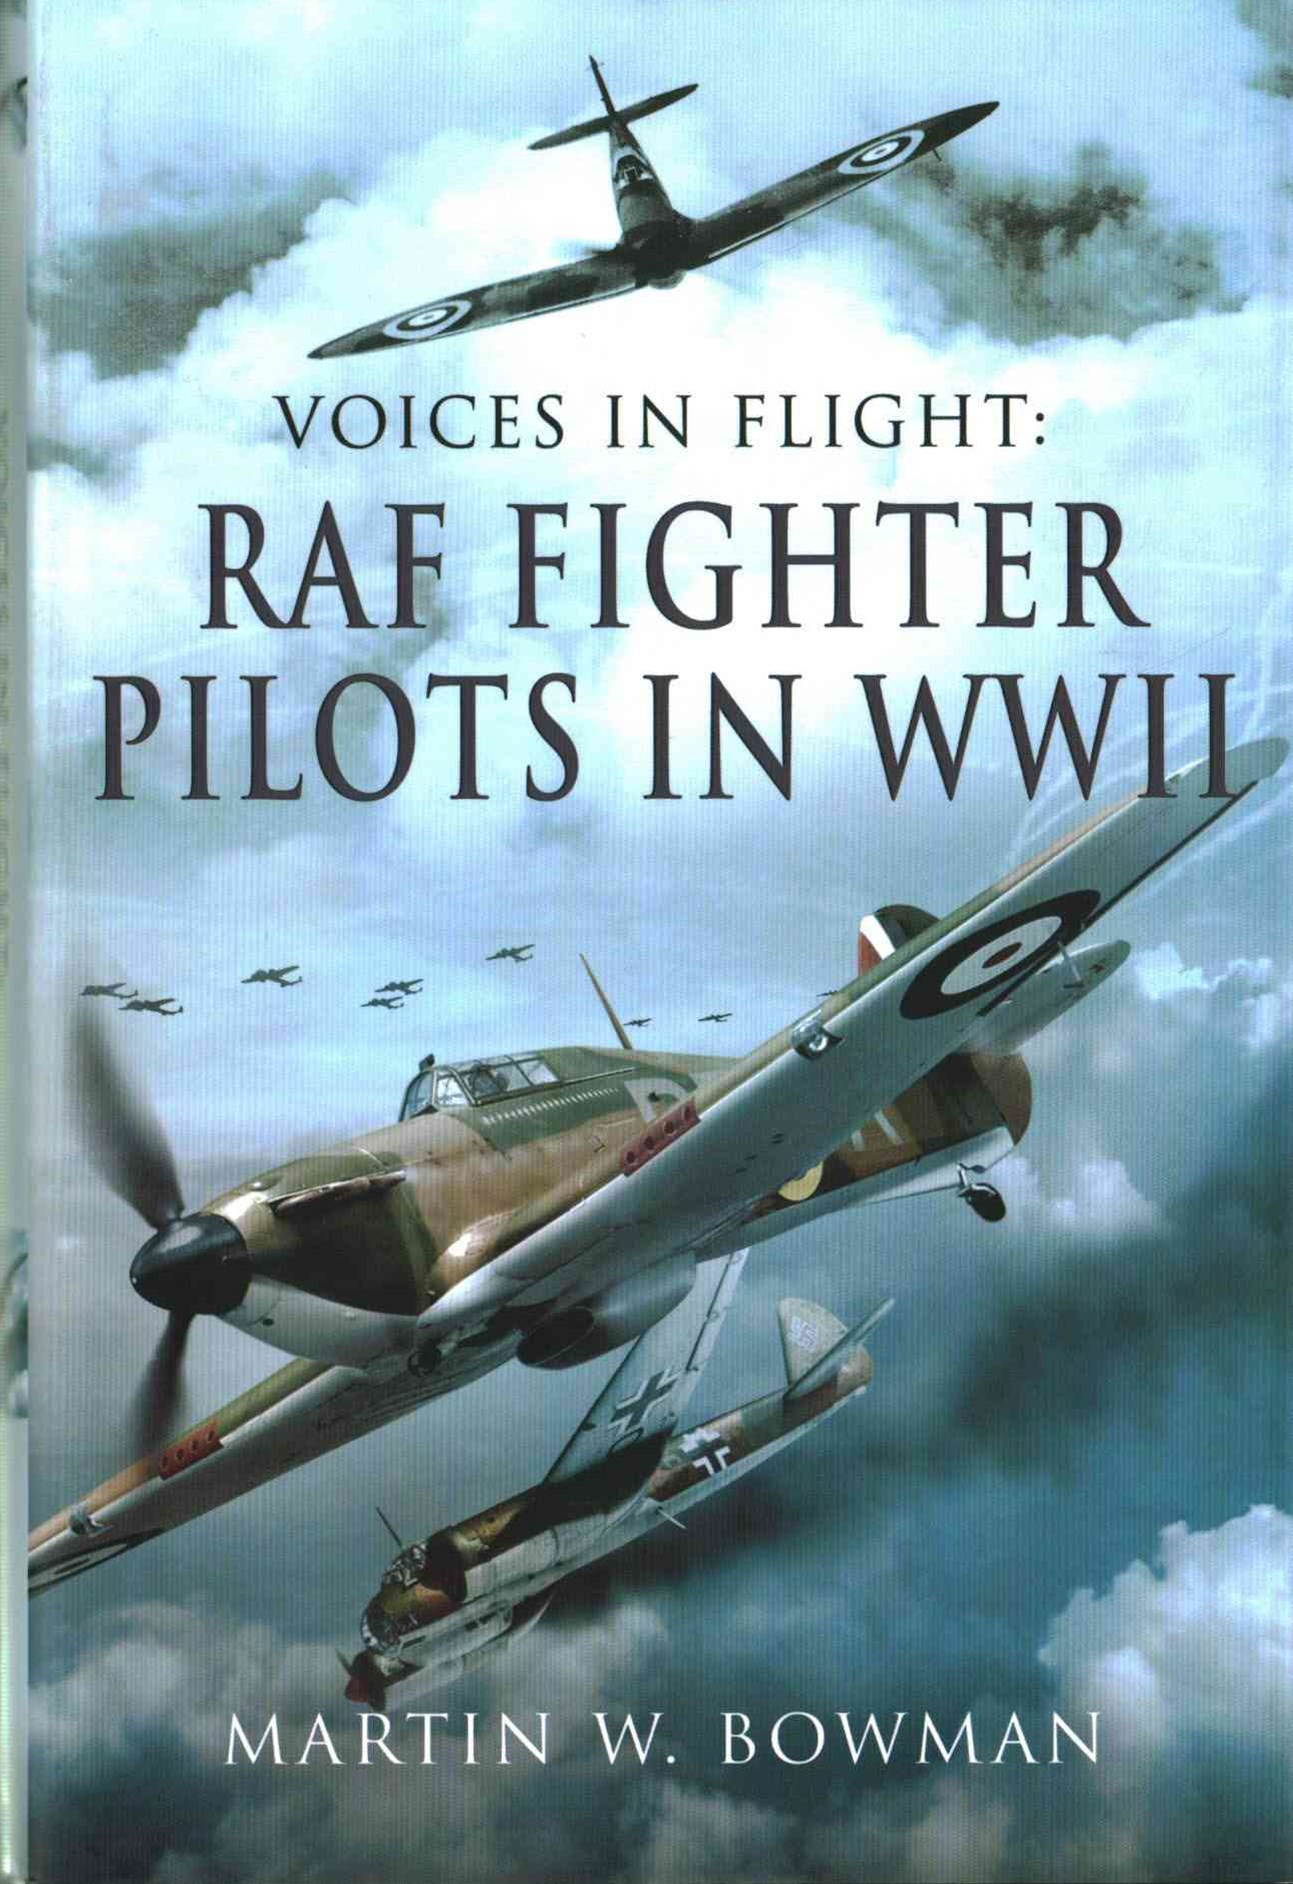 Voices in Flight: RAF Fighter Pilots in WWII